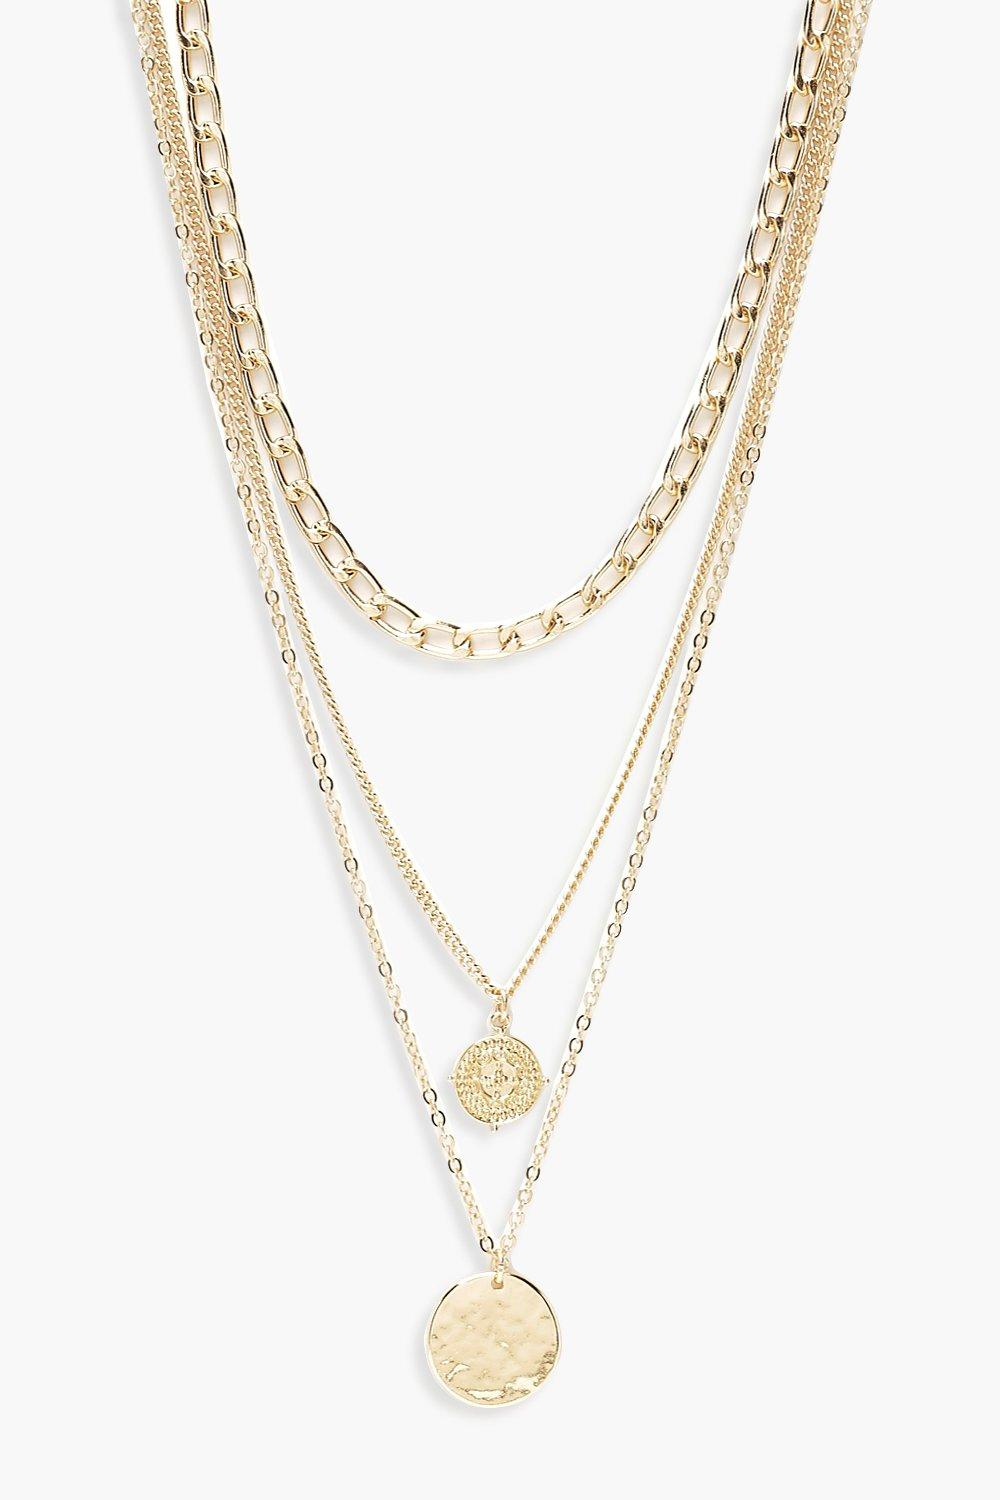 Plus Chain Pendant Layered Chocker